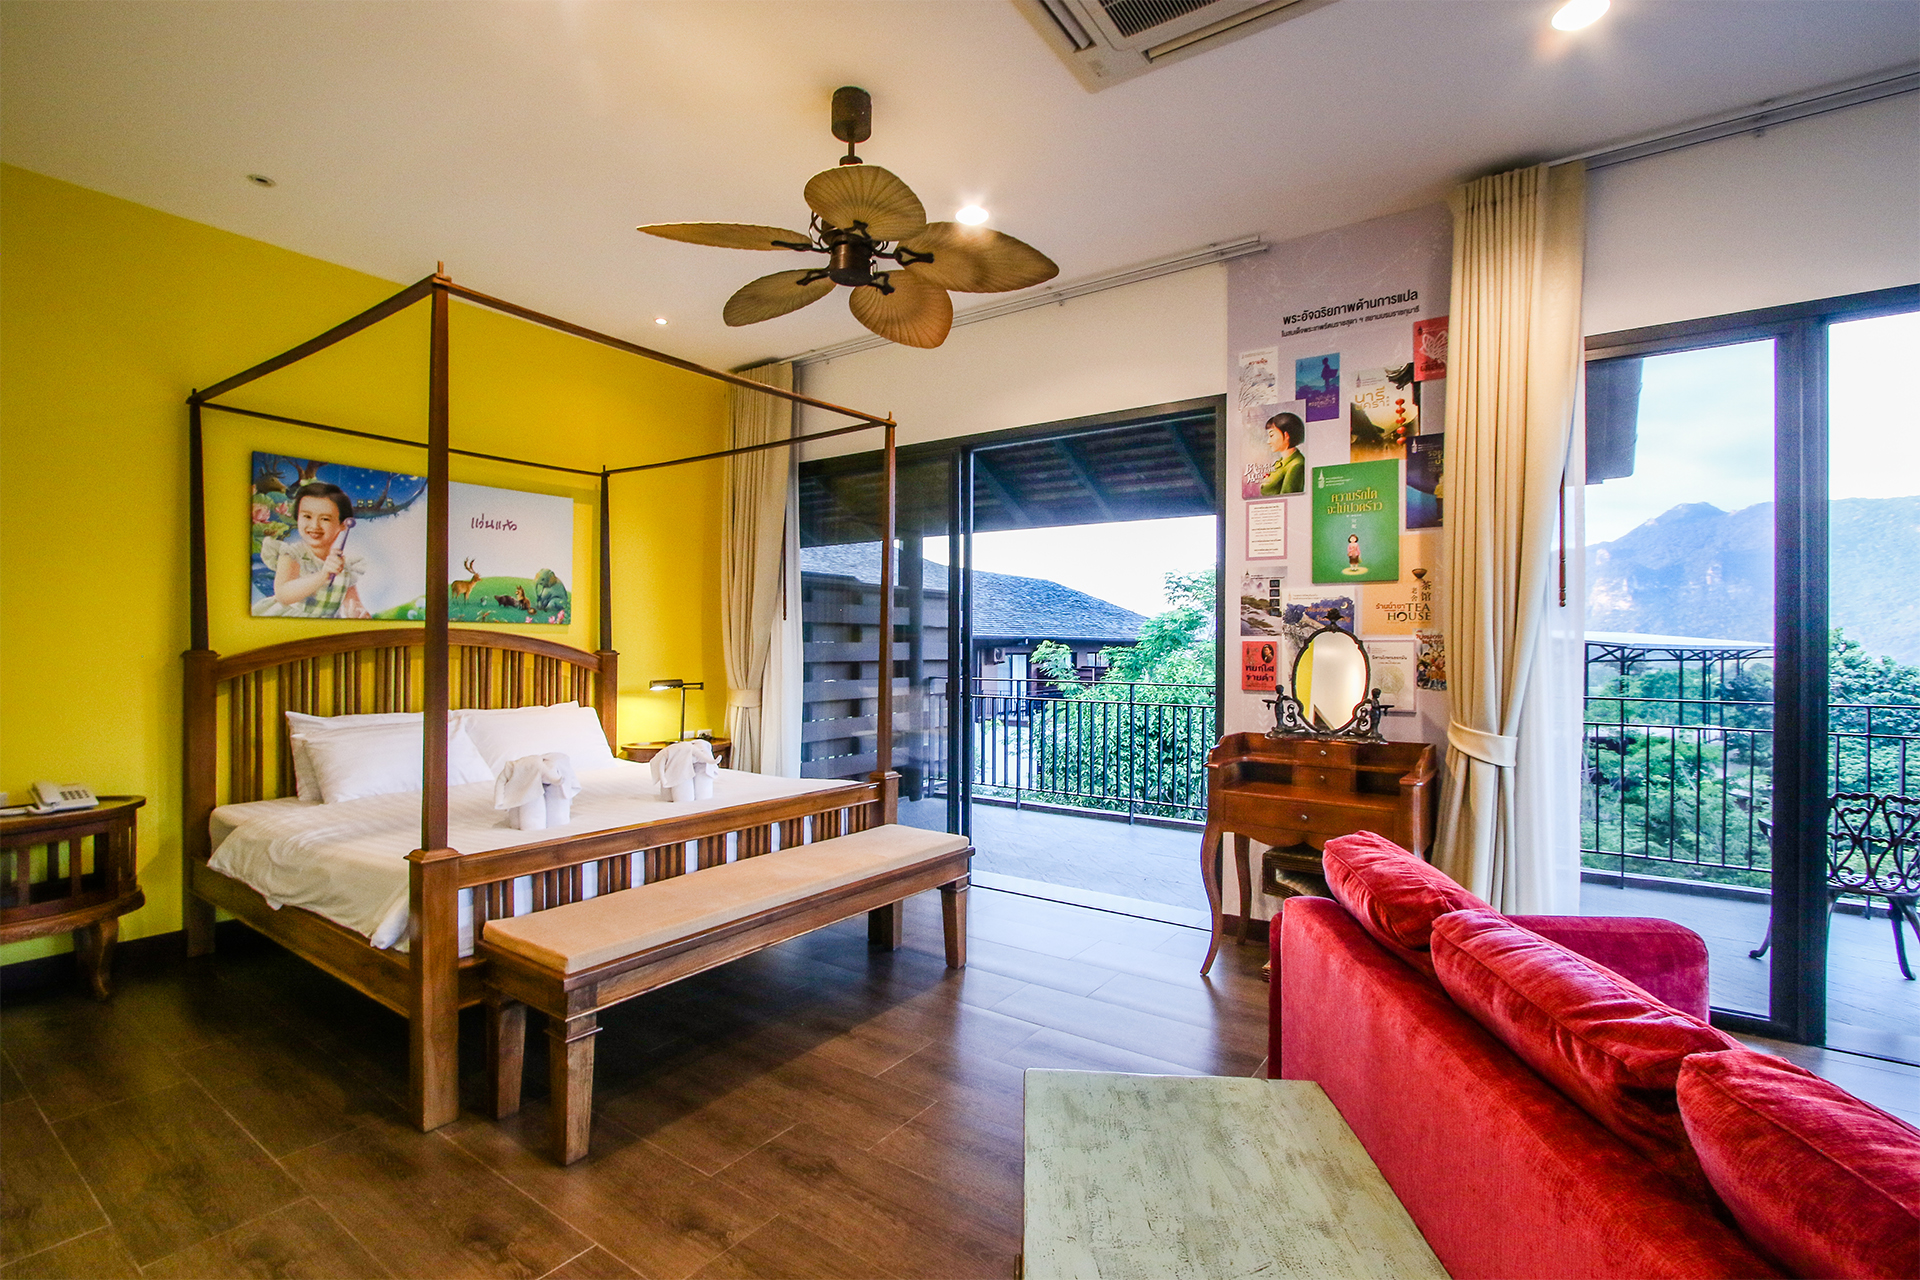 AccommodationFacilities_ZoneR_Type2_slider-18-04-2018-wankaew